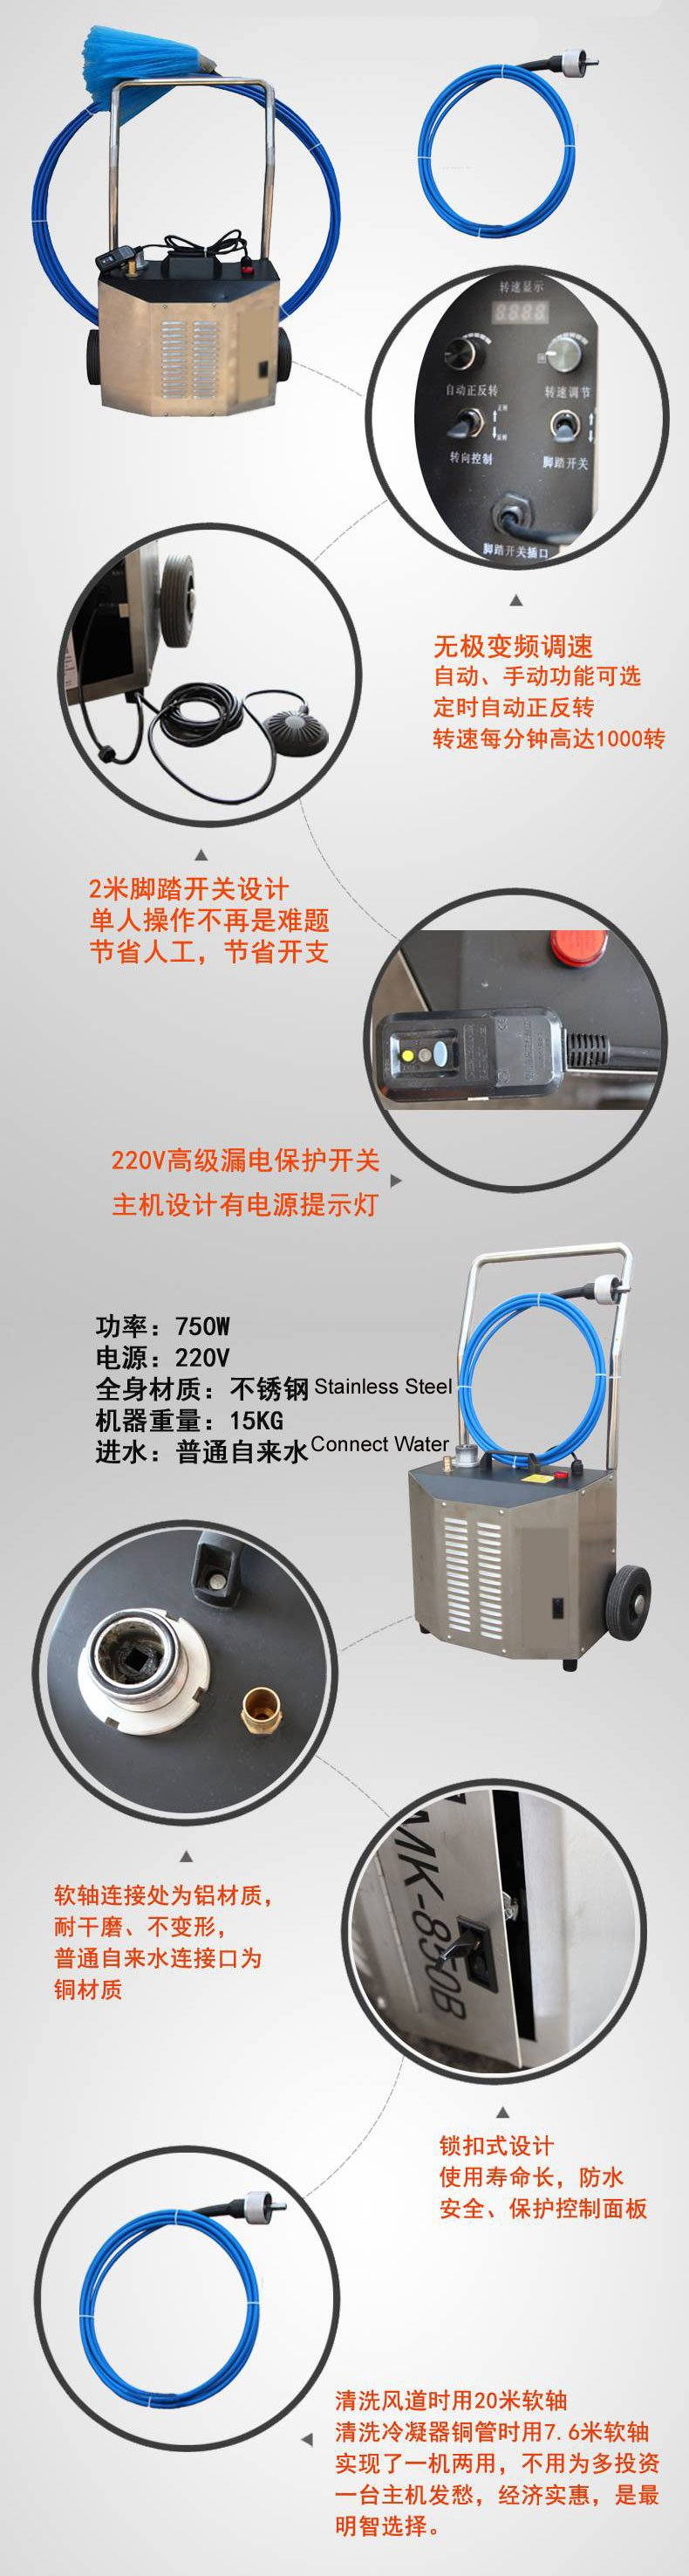 flexible Shaft-and-chiller-tube cleaning machine